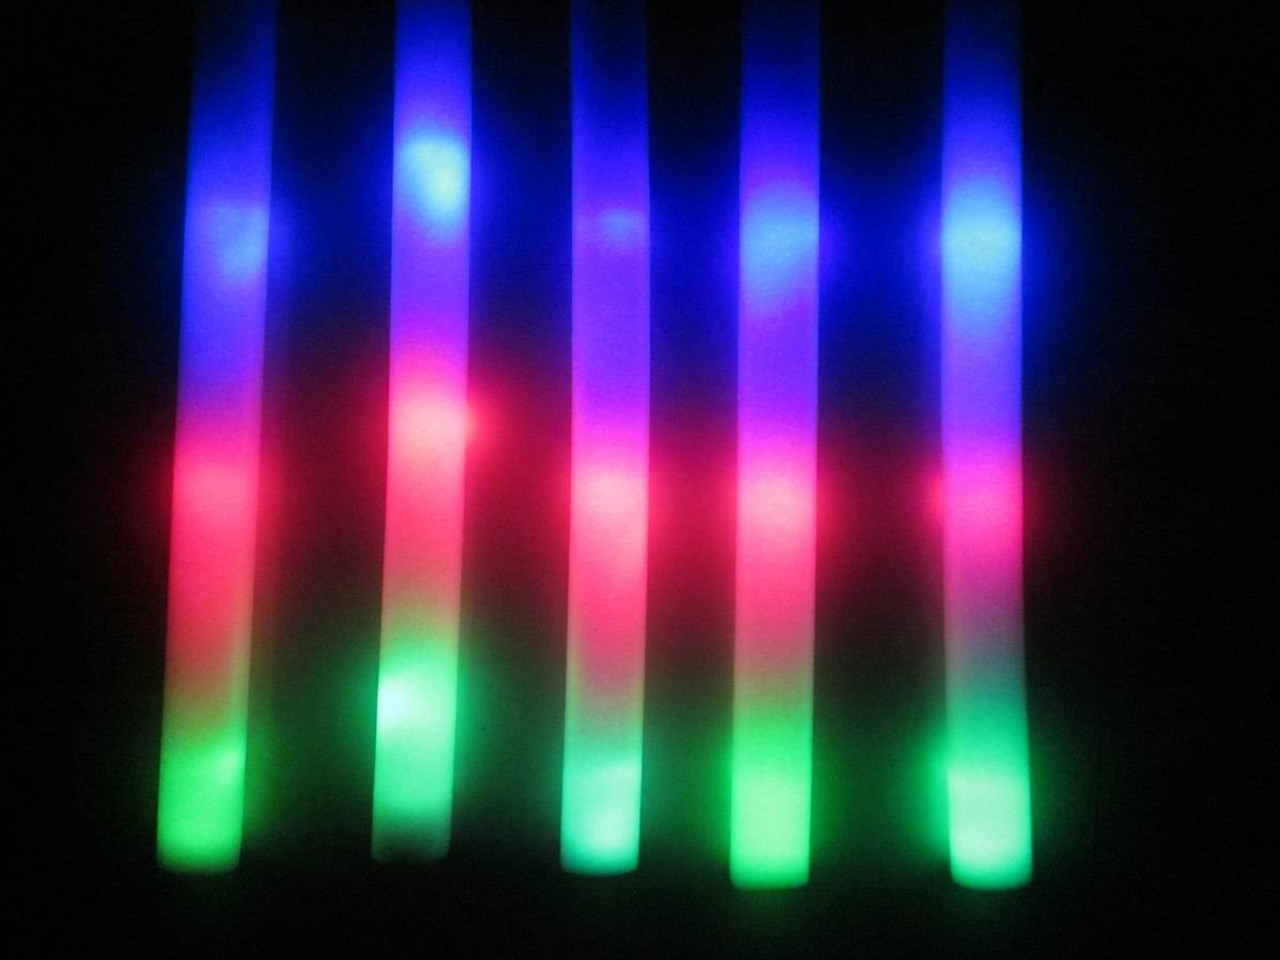 LED, FOAM, lite, light, sticks, stix, club, rave, party, dance, custom party batons, custom party sticks, led foam sticks, led sticks, led batons, party custom sticks, nightclub foam sticks, nightclub batons, foam sticks, foam party sticks, custom party sticks, led foam, led glow sticks, led custom glow sticks, custom, glow sticks, glow party sticks